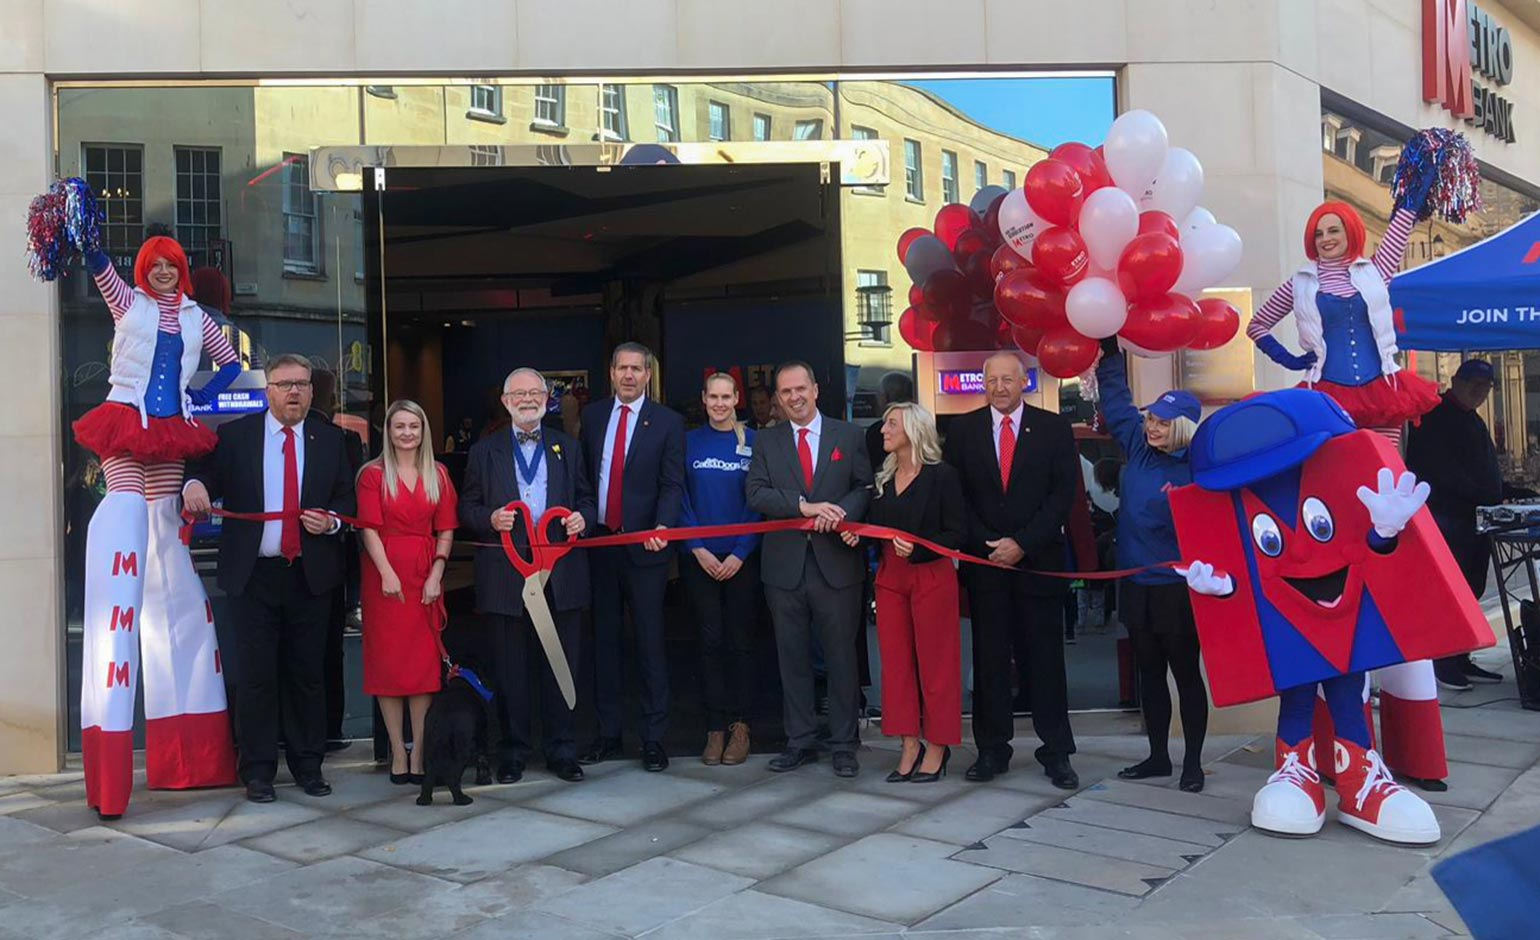 Celebration marks Metro Bank milestone with 60th store opening in Bath